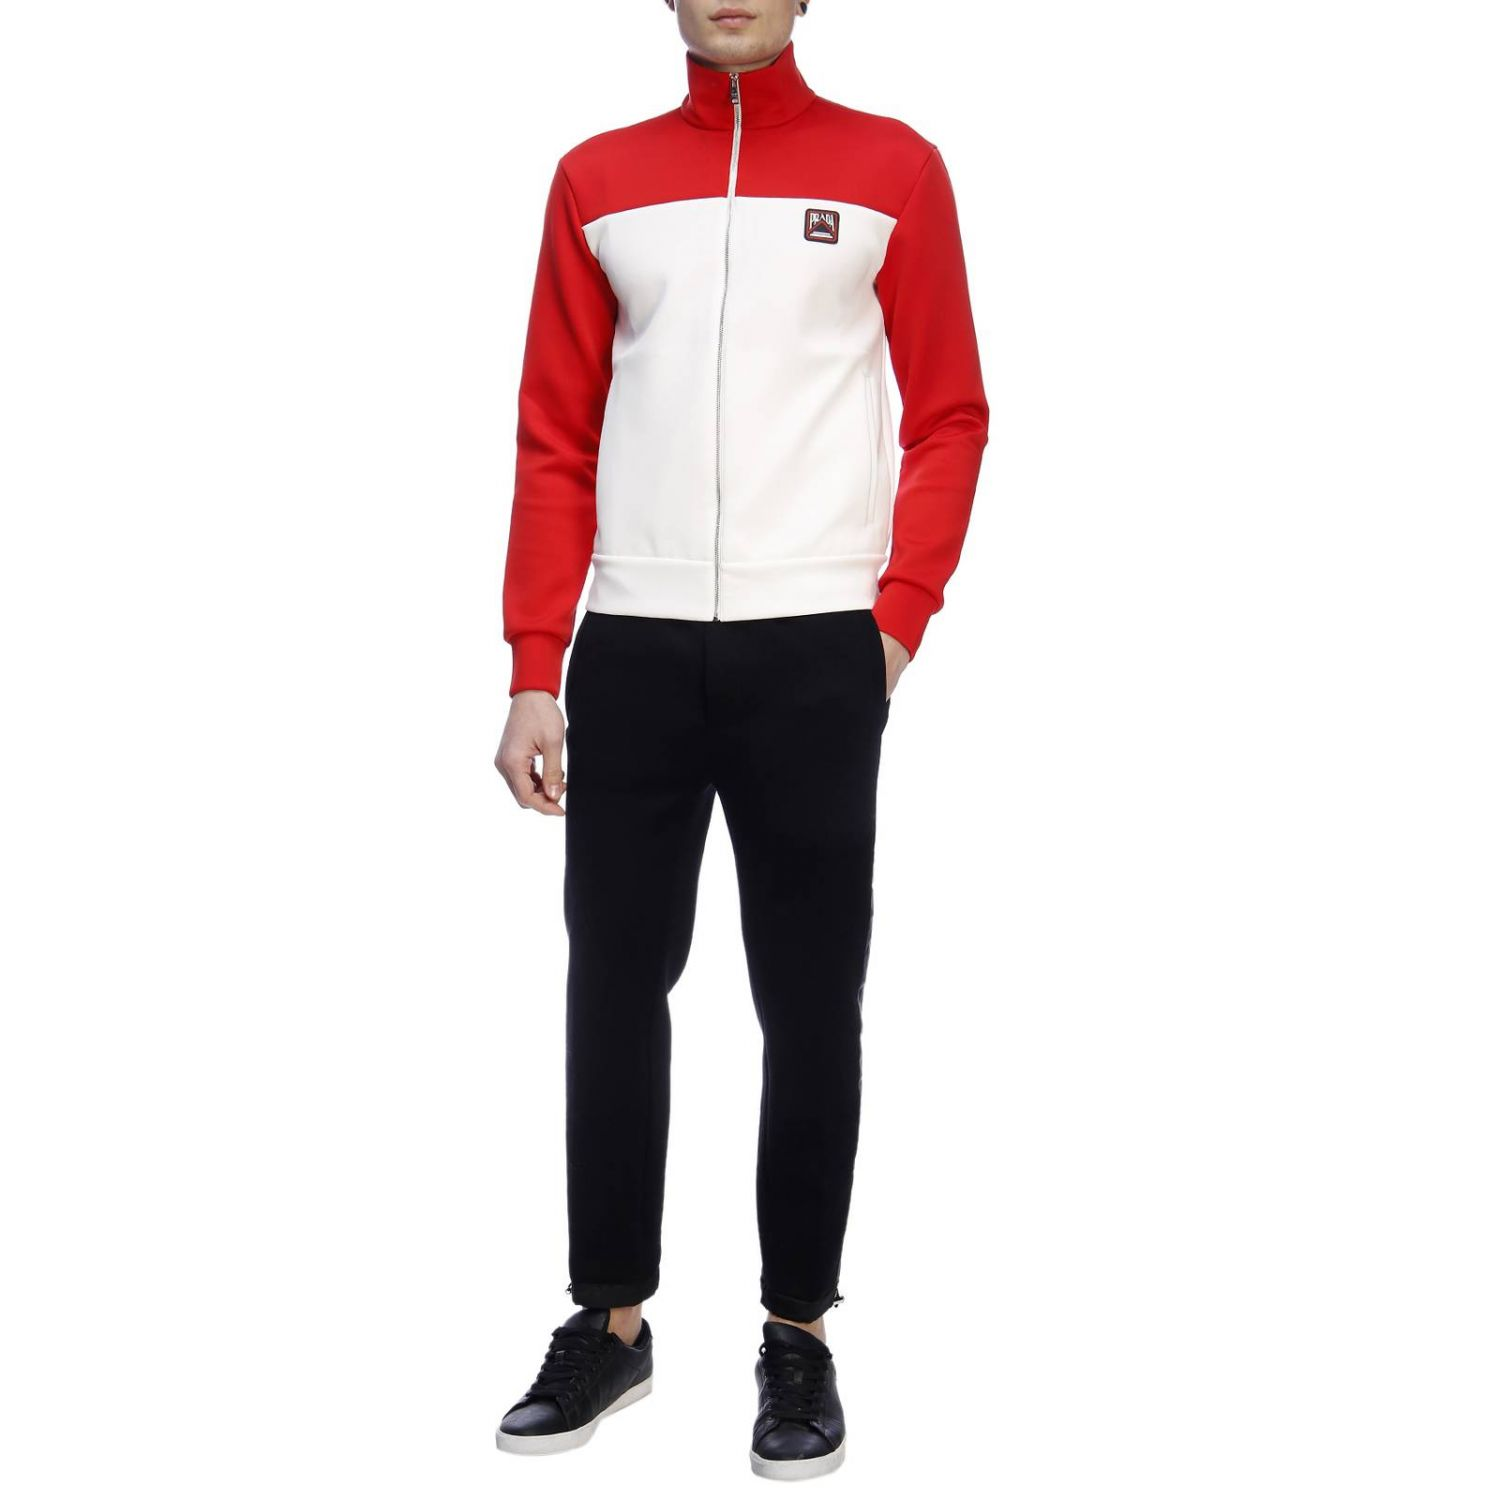 Jumper men Prada red 4